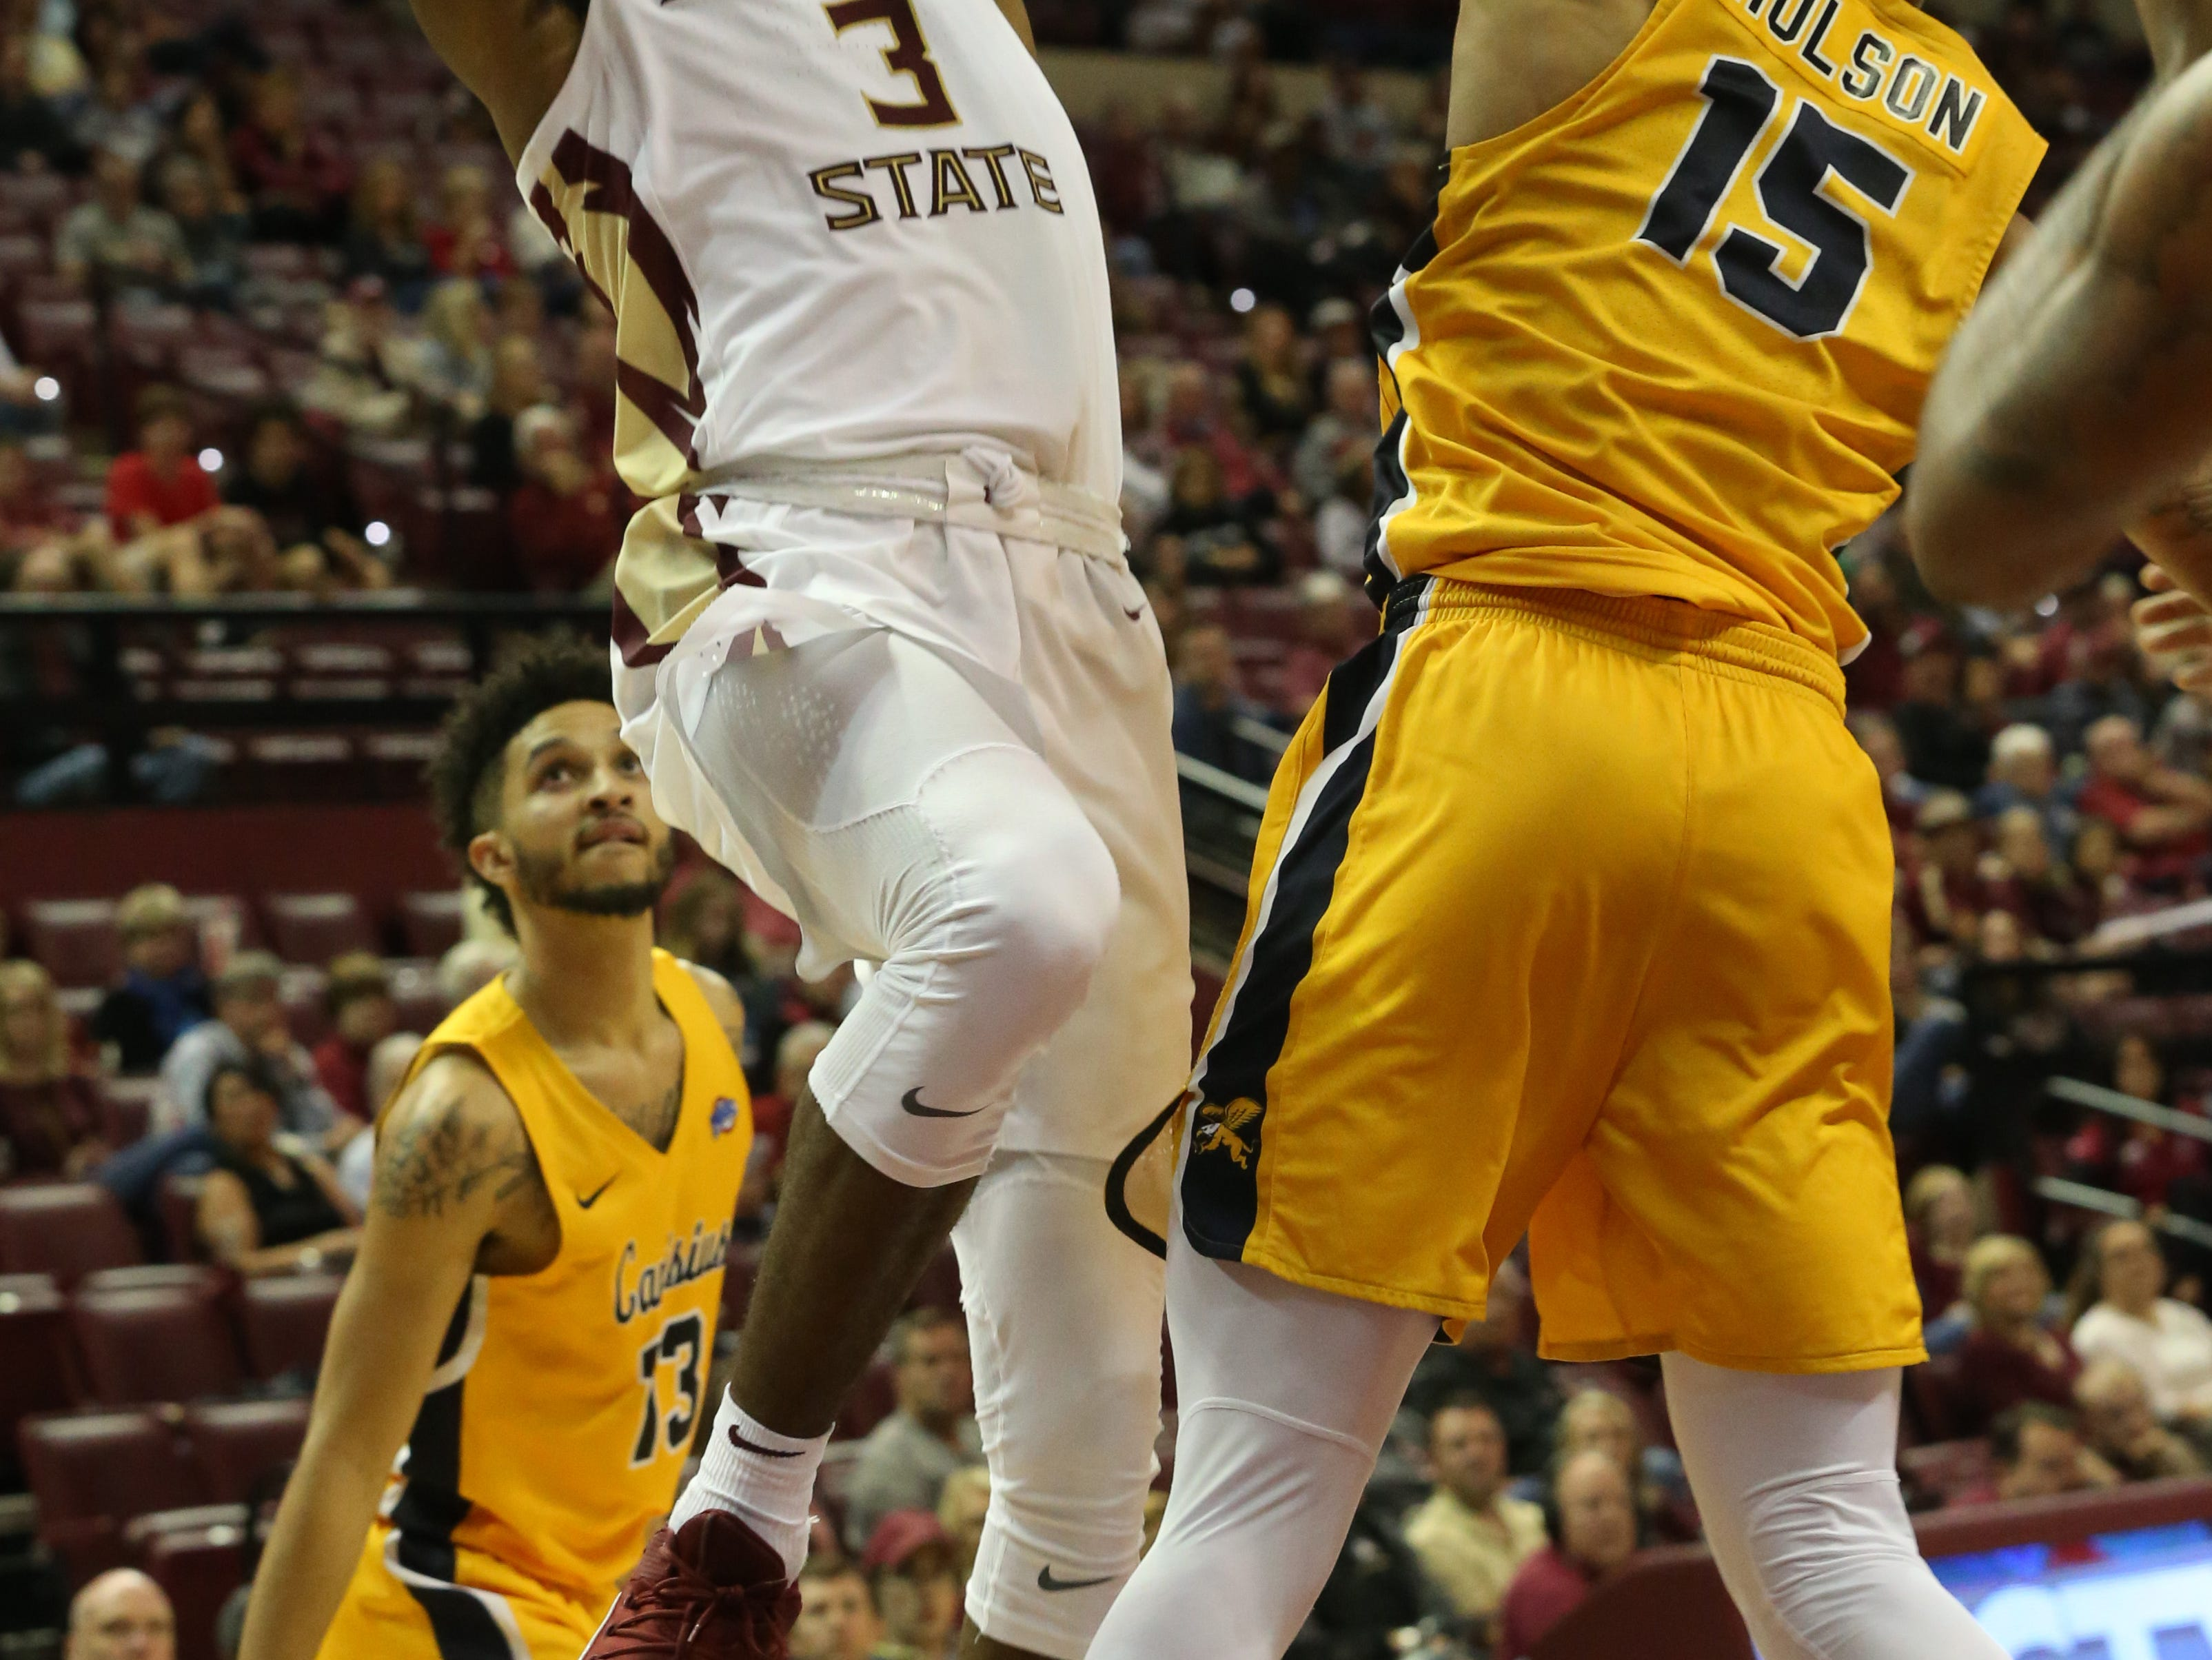 Florida State Seminoles guard Trent Forrest (3) shoots over Canisius Golden Griffins guard Takal Molson (15) as the Florida State Seminoles host the Canisius Golden Griffins for basketball in the Tucker Civic Center, Monday, Nov. 19, 2018.